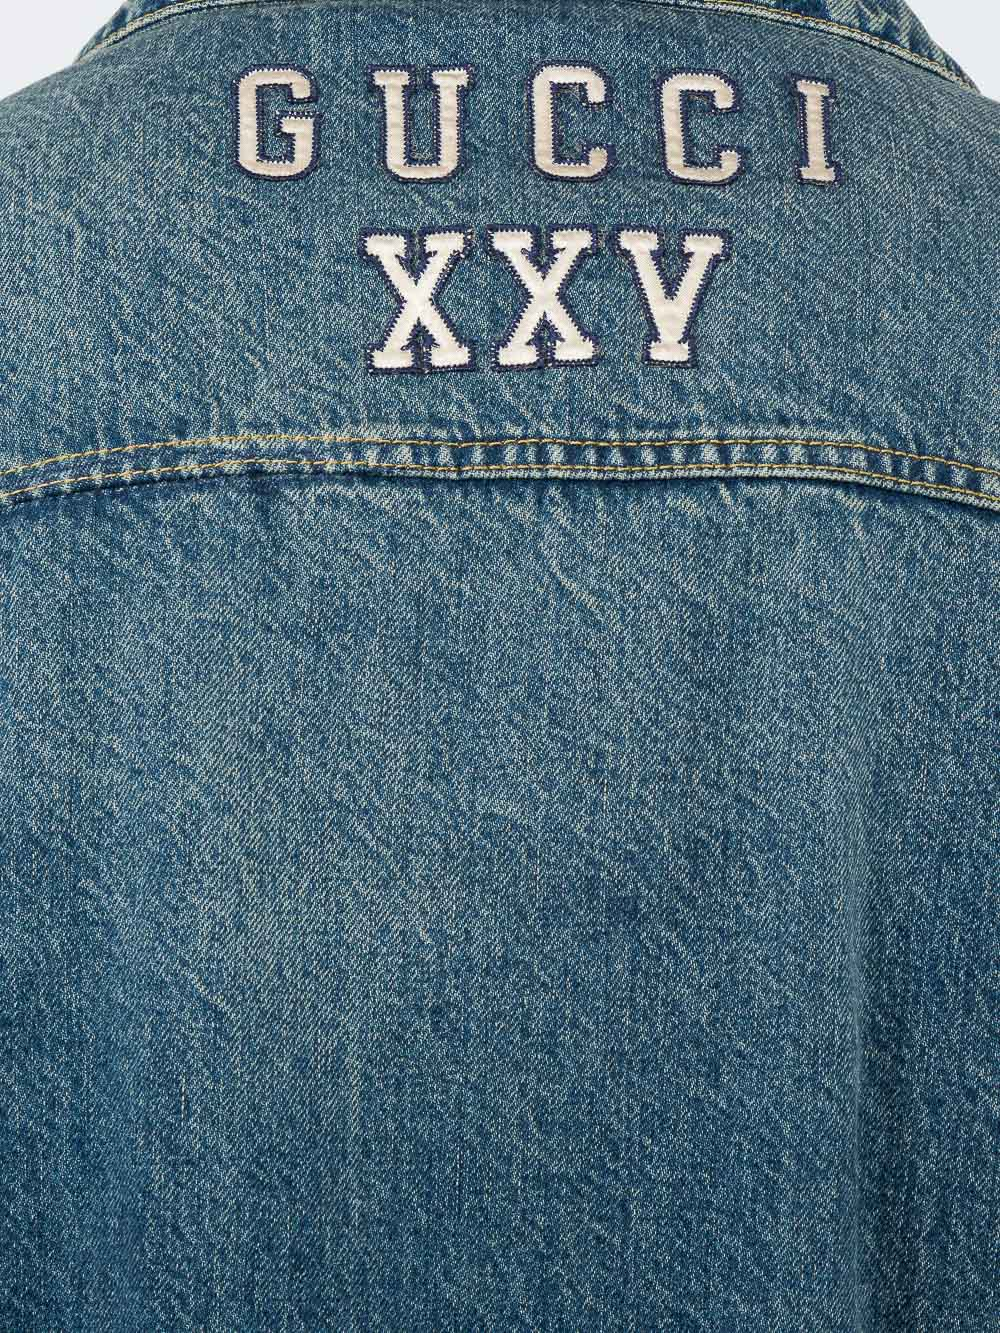 4942f785675 Blue Men s Denim Jacket With NY Yankees  Patch by Gucci buy at ...